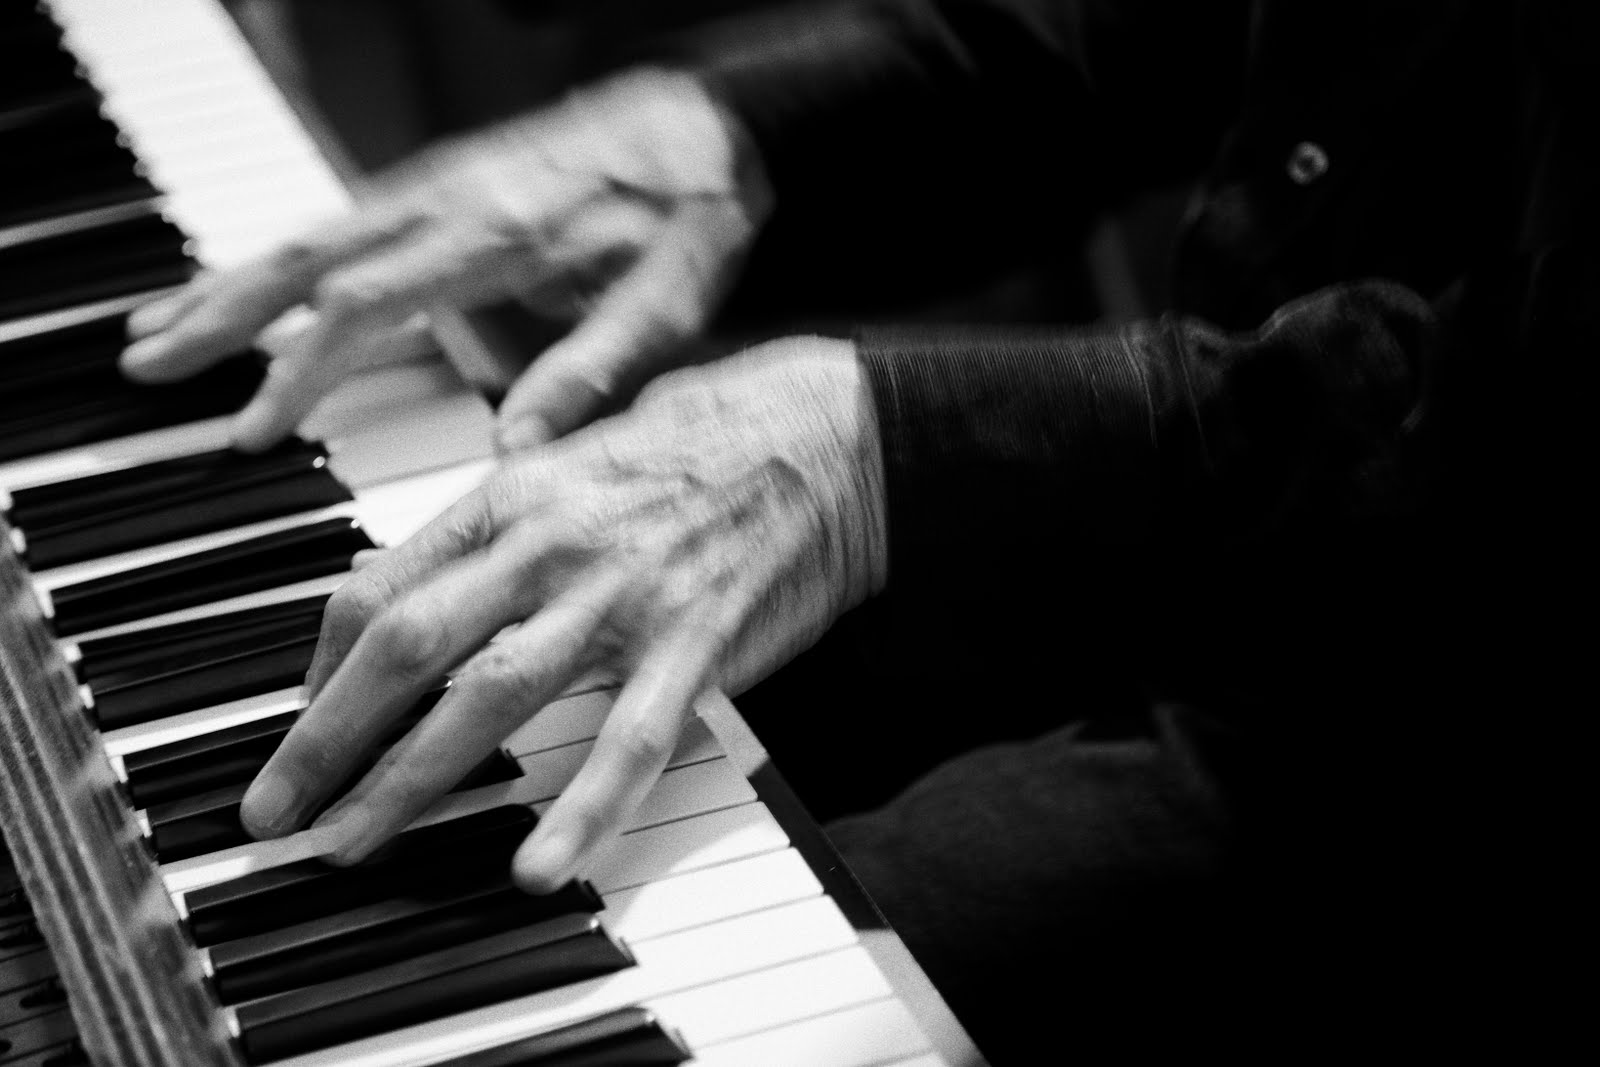 Pianist, practising. | Artists at Work | Pinterest